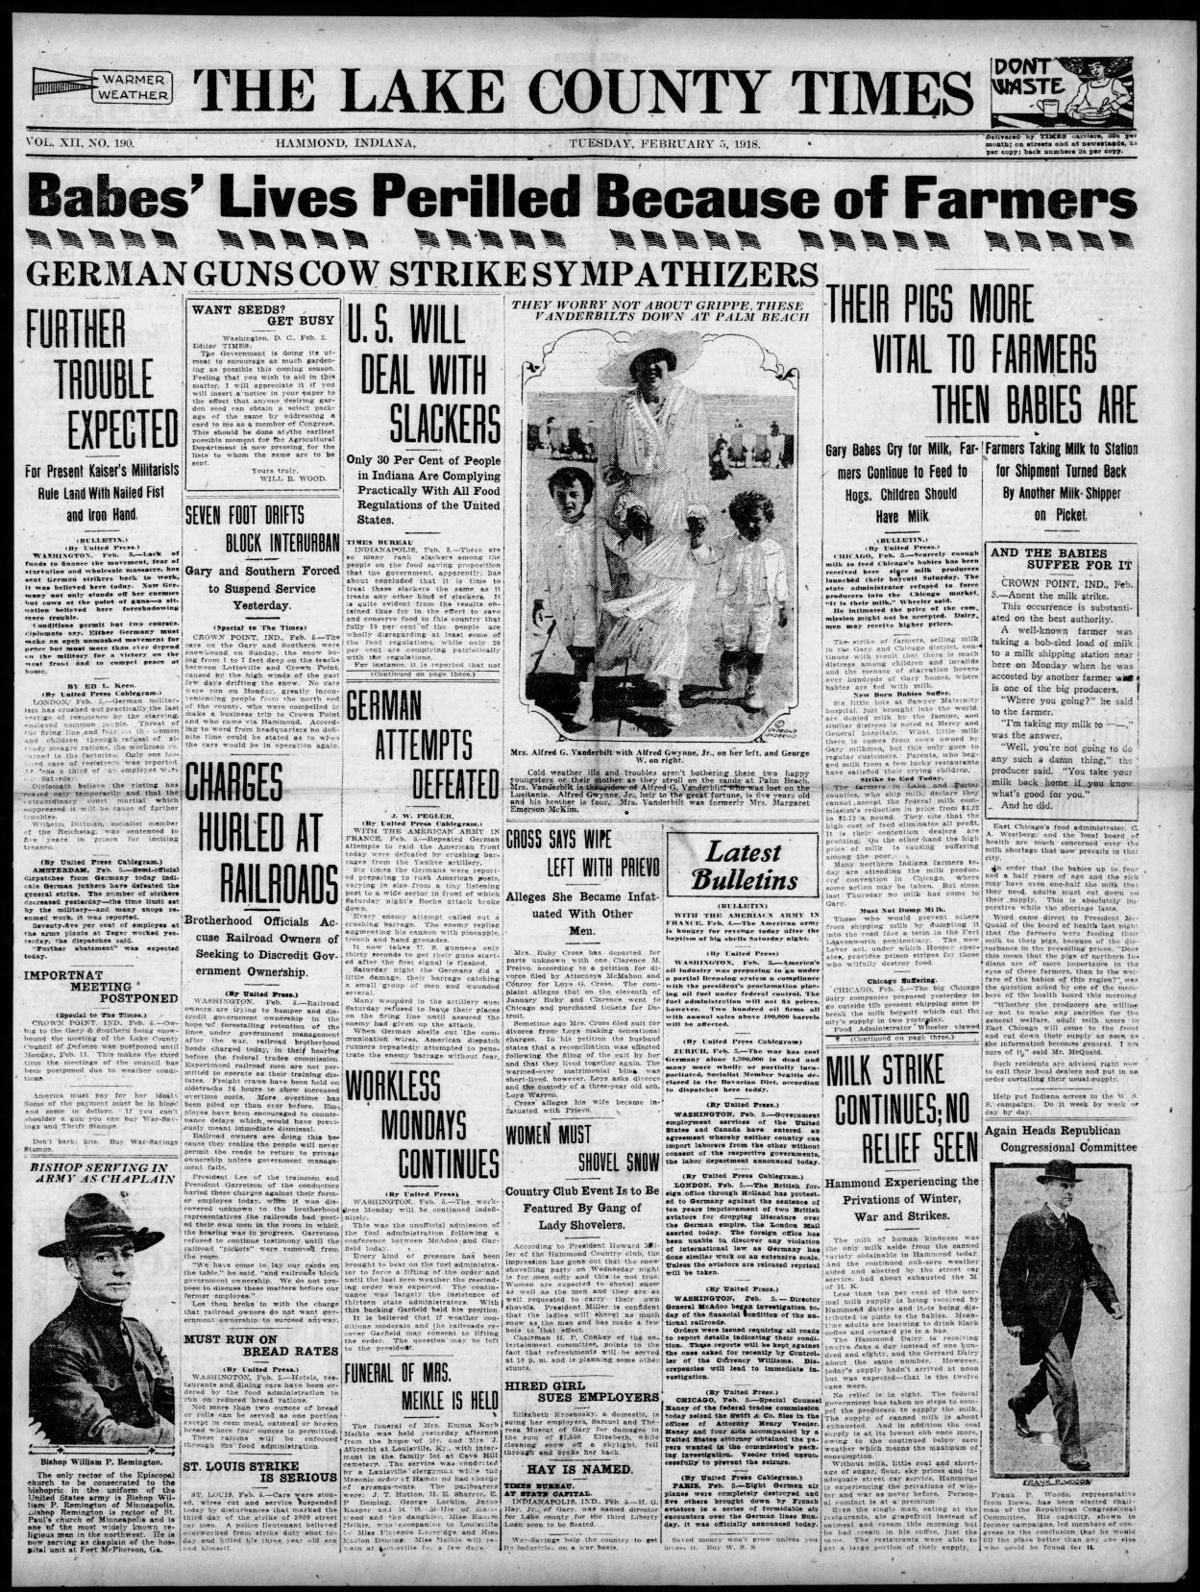 Feb. 5, 1918: Babes' Lives Periled Because of Farmers